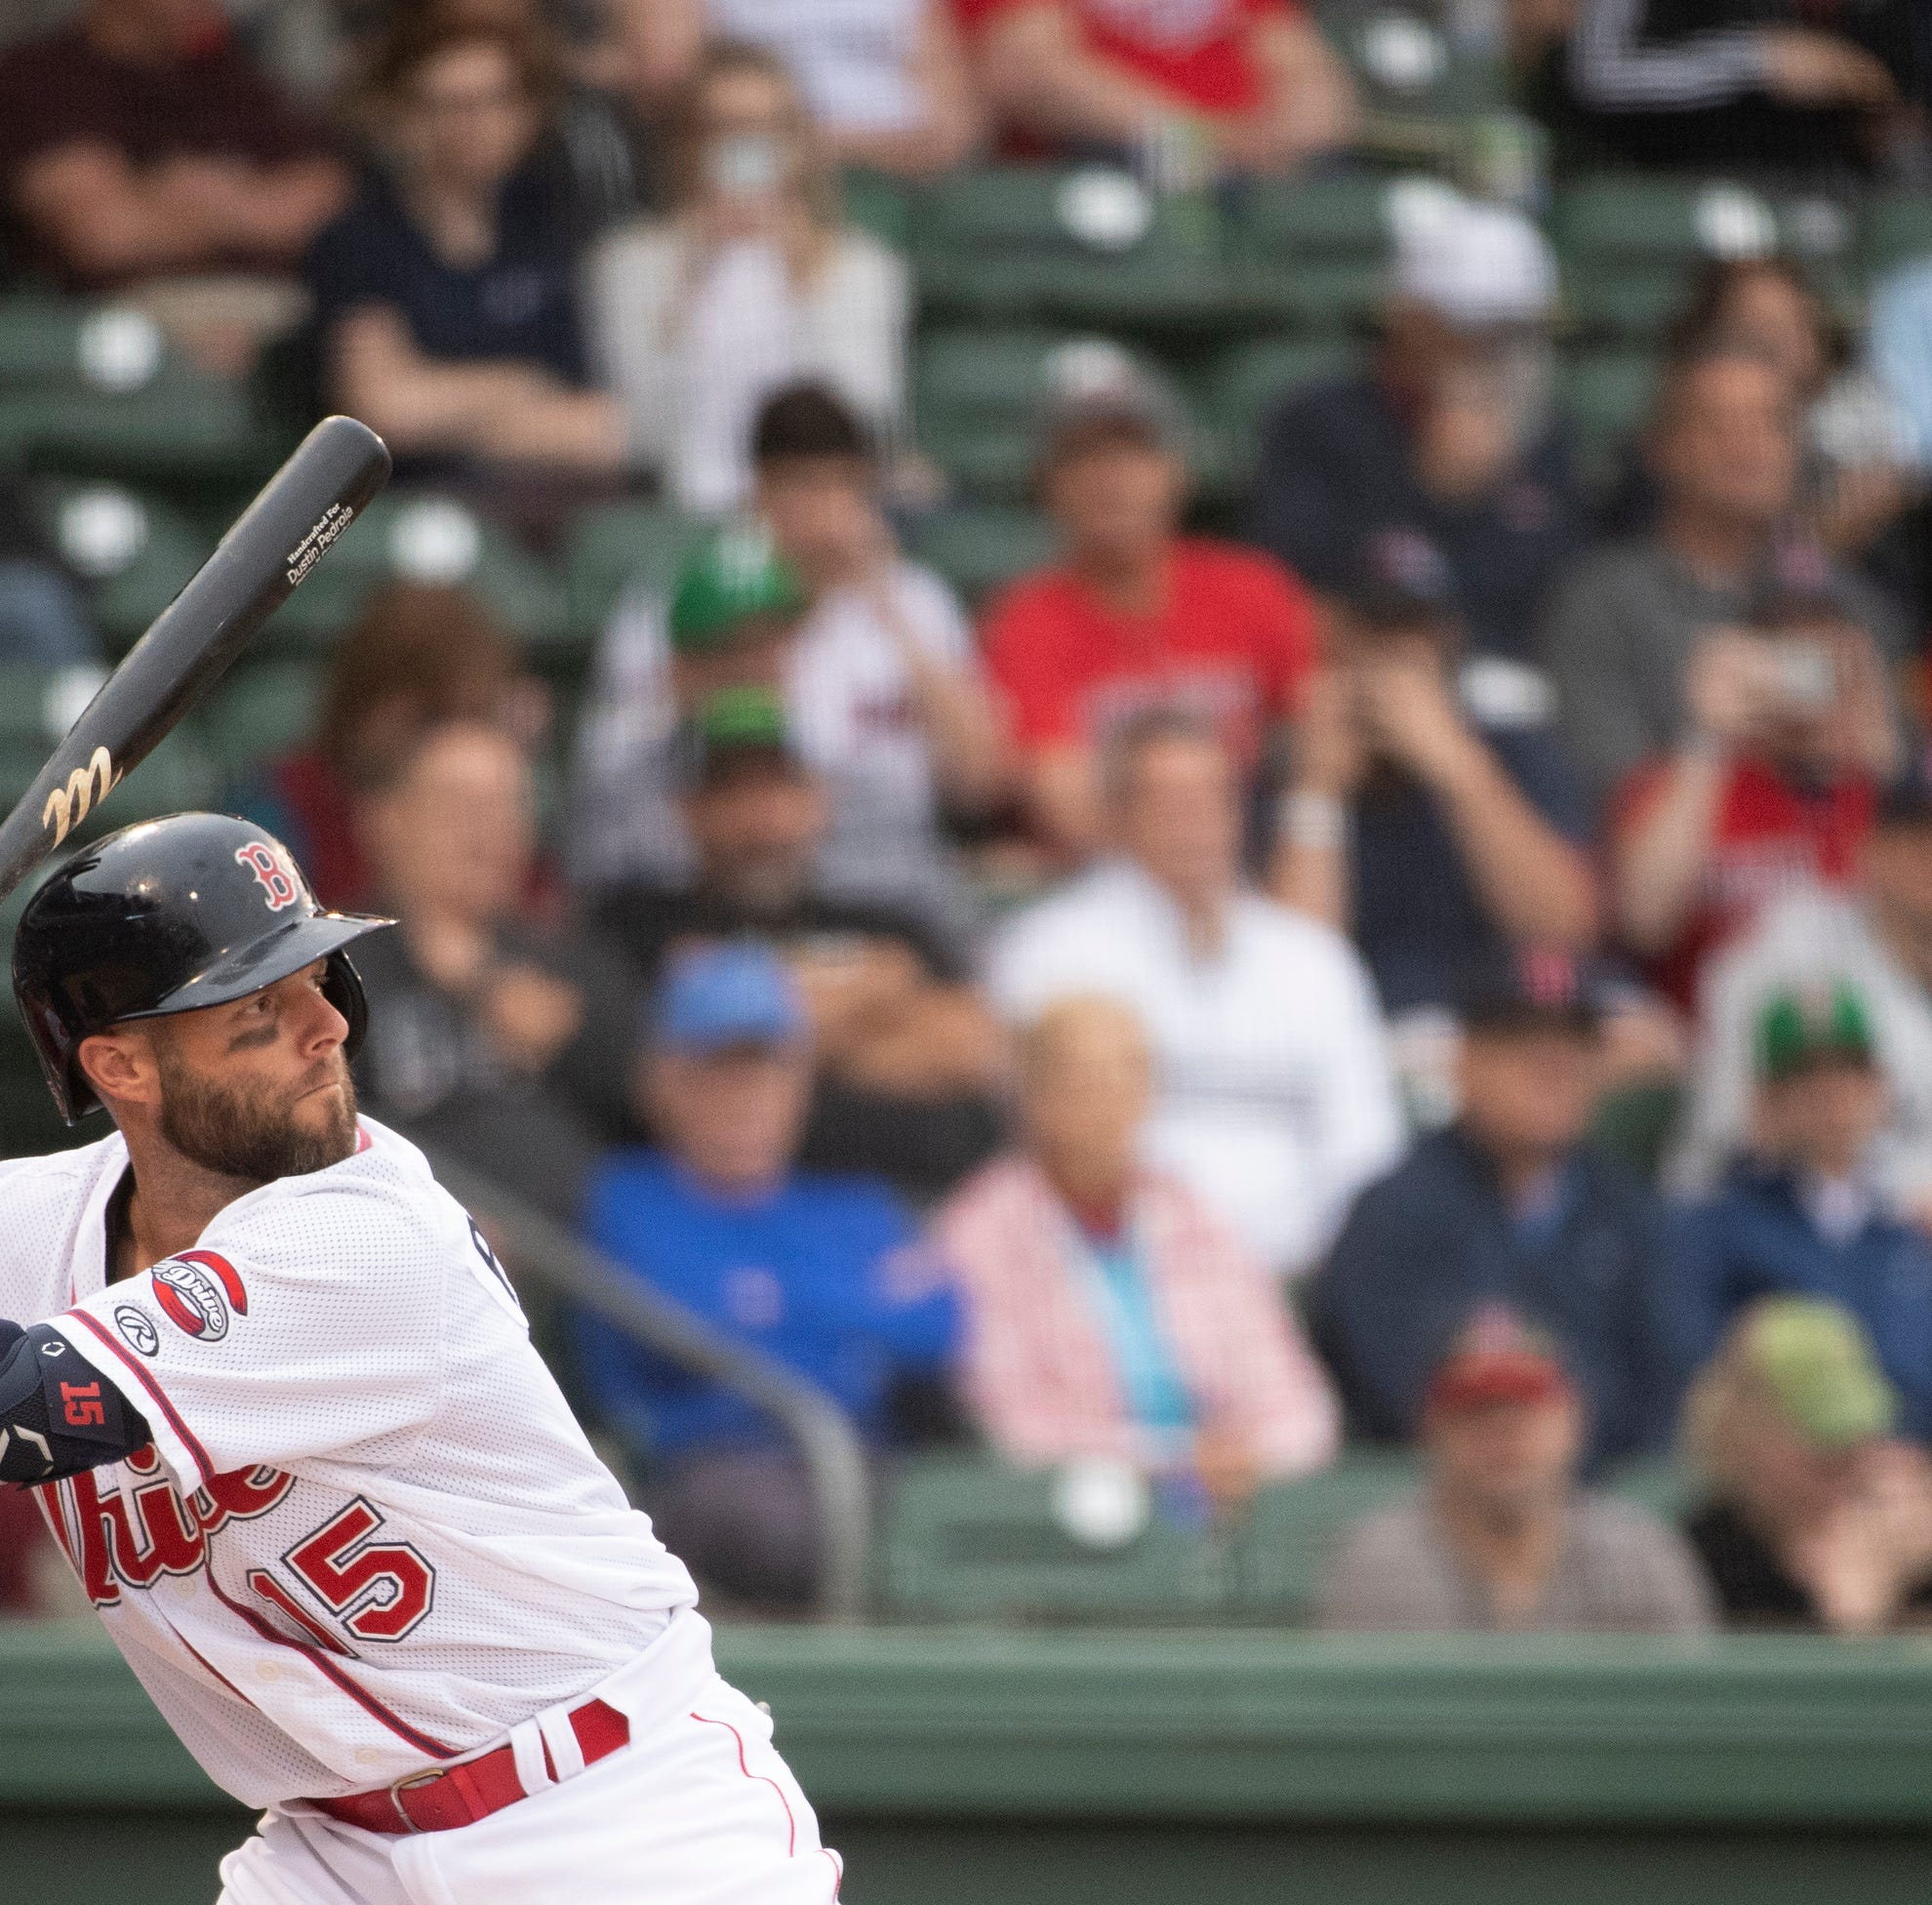 With Dustin Pedroia at second base, Greenville Drive draw record crowd on Opening Night